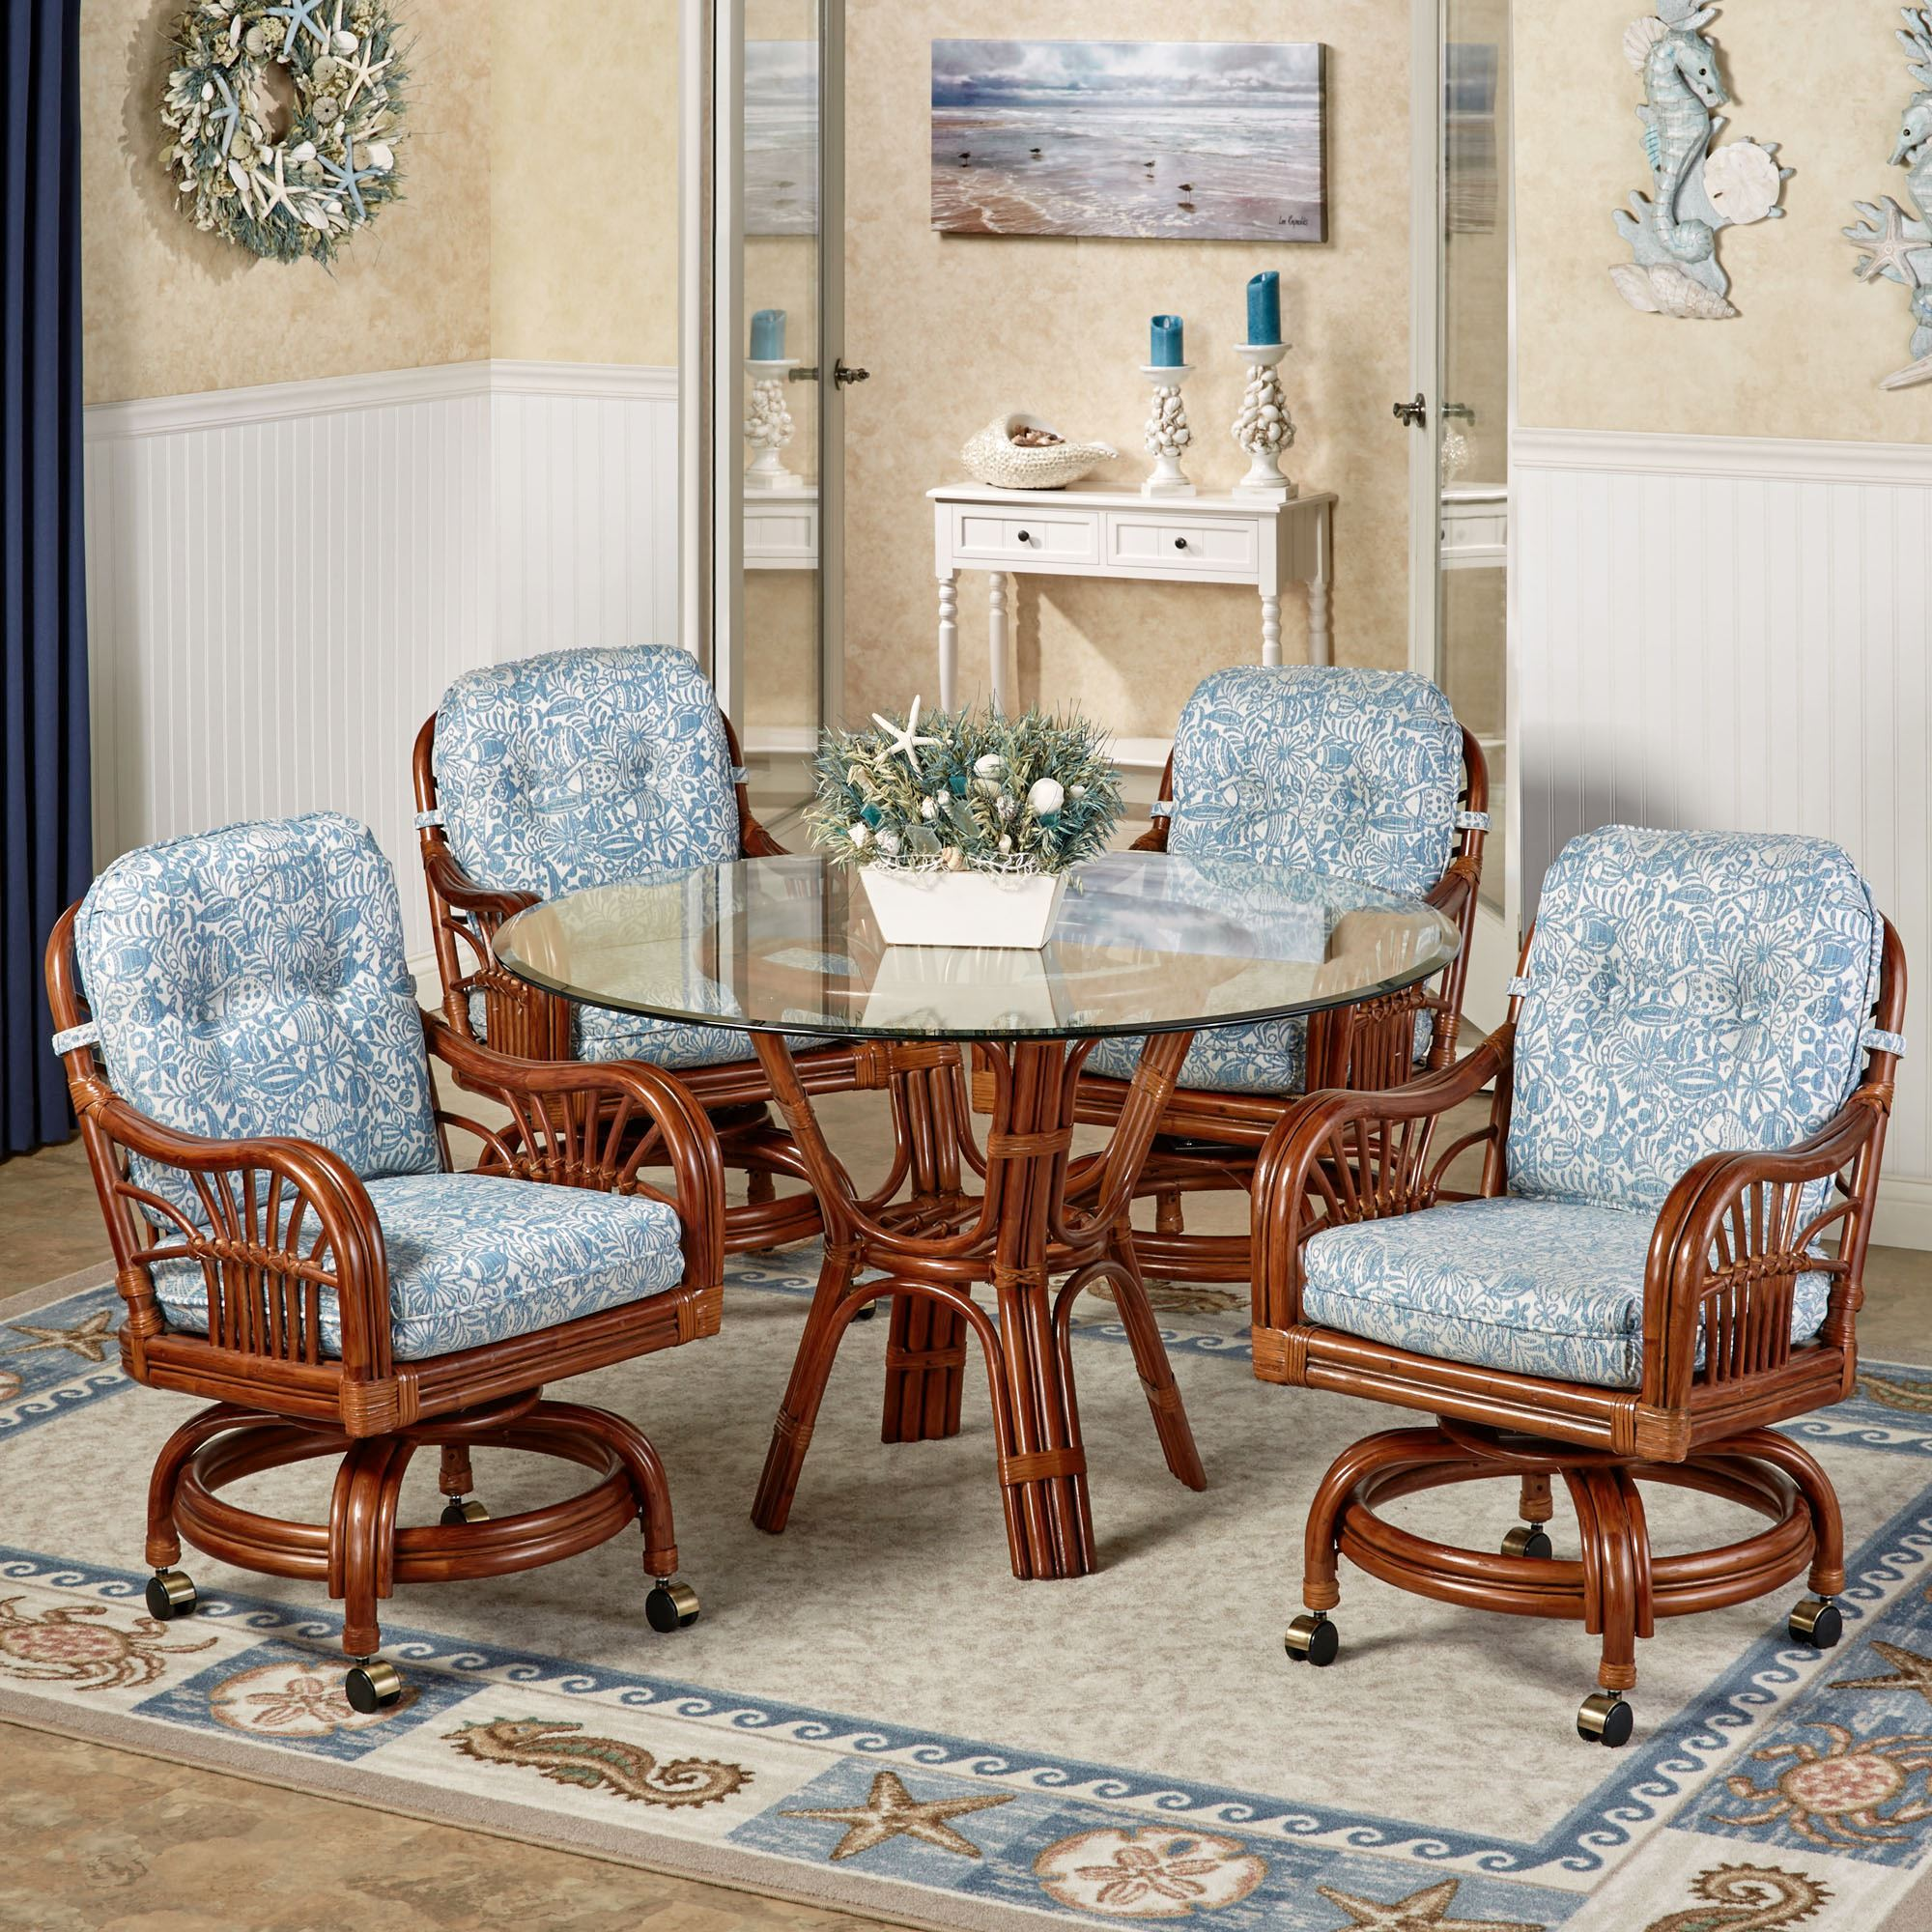 Dining Chairs With Casters Leikela Malibu Seaside Tropical Dining Furniture Set